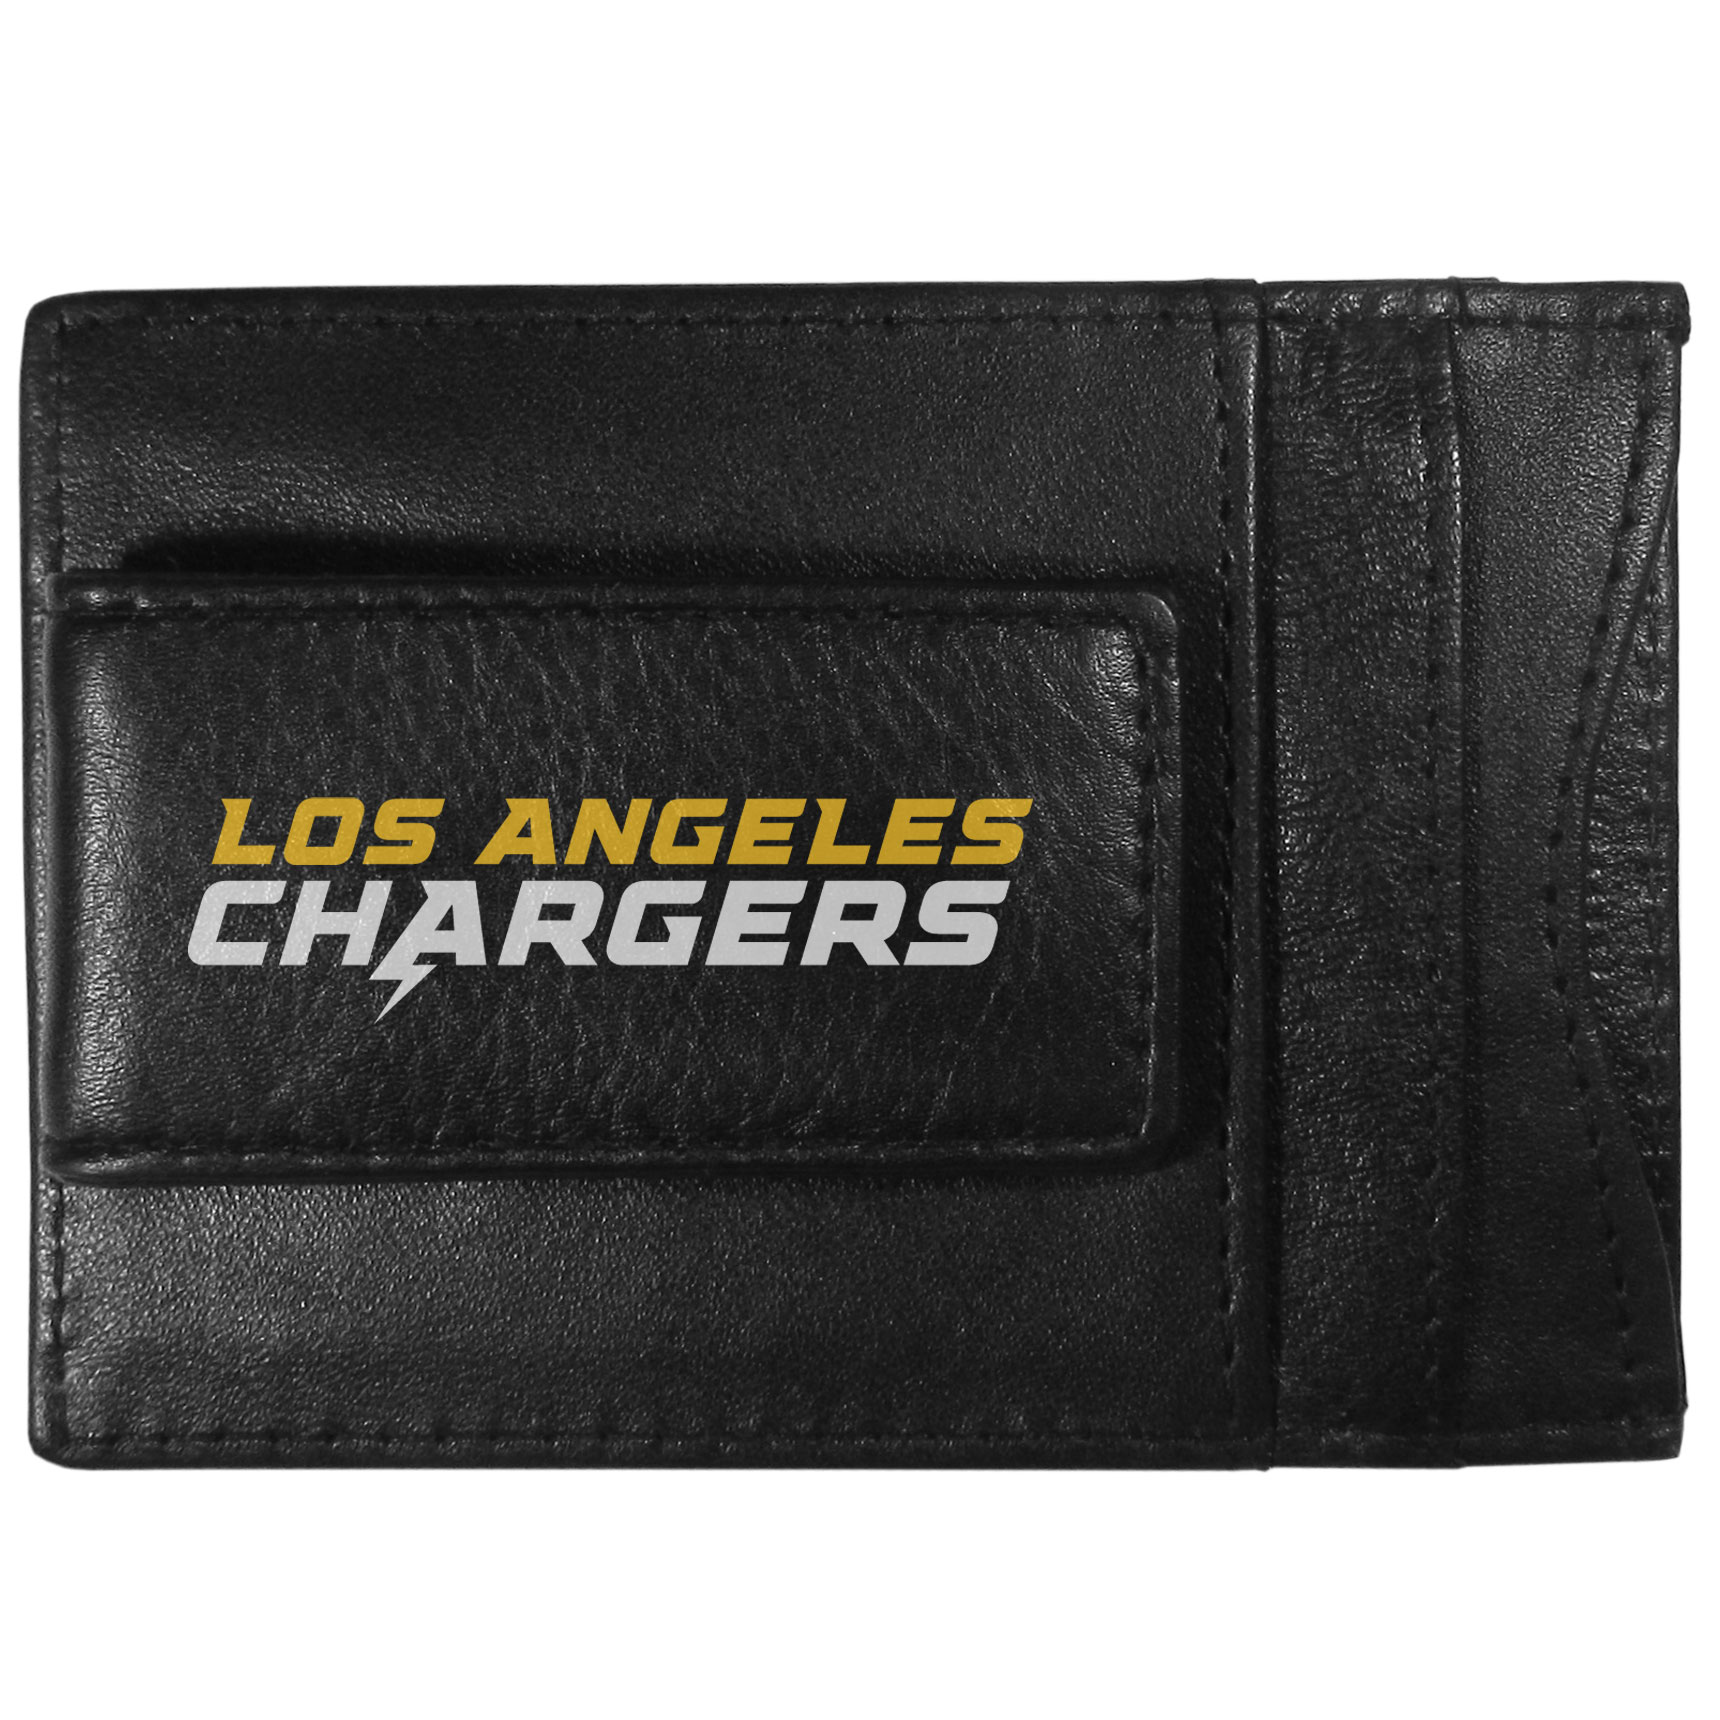 Los Angeles Chargers Logo Leather Cash and Cardholder - This super slim leather wallet lets you have all the benefits of a money clip while keeping the organization of a wallet. On one side of this front pocket wallet there is a strong, magnetic money clip to keep your cash easily accessible and the?Los Angeles Chargers team logo on the front. The versatile men's accessory is a perfect addition to your fan apparel.